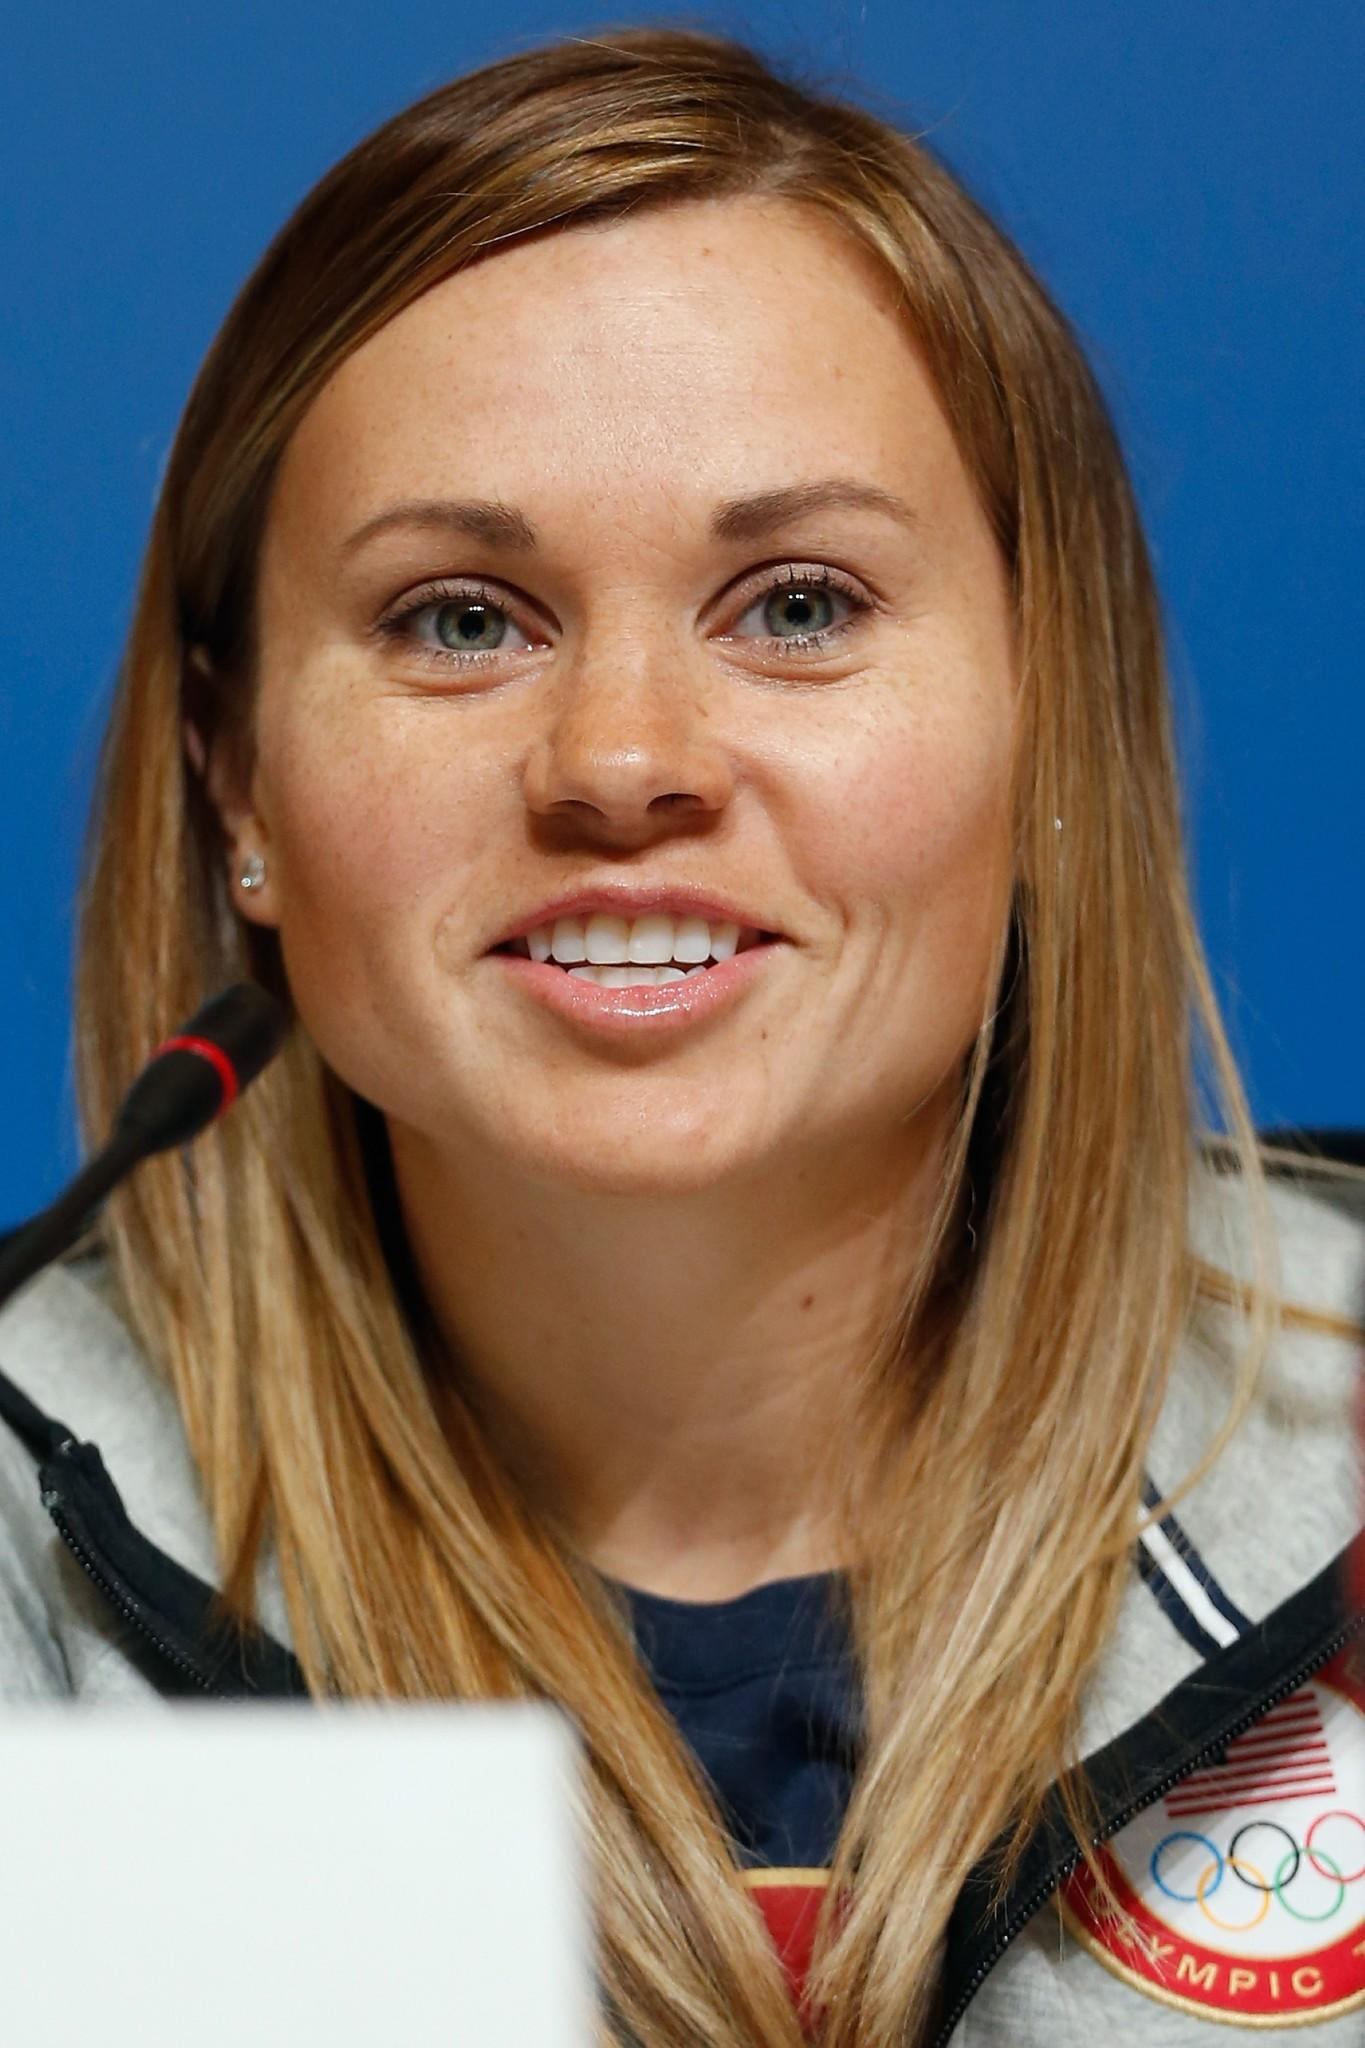 Jessica Smith attends a short-track press conference ahead of the Olympics at the Main Press Centre in Sochi. (Matthew Stockman/Getty Photo)